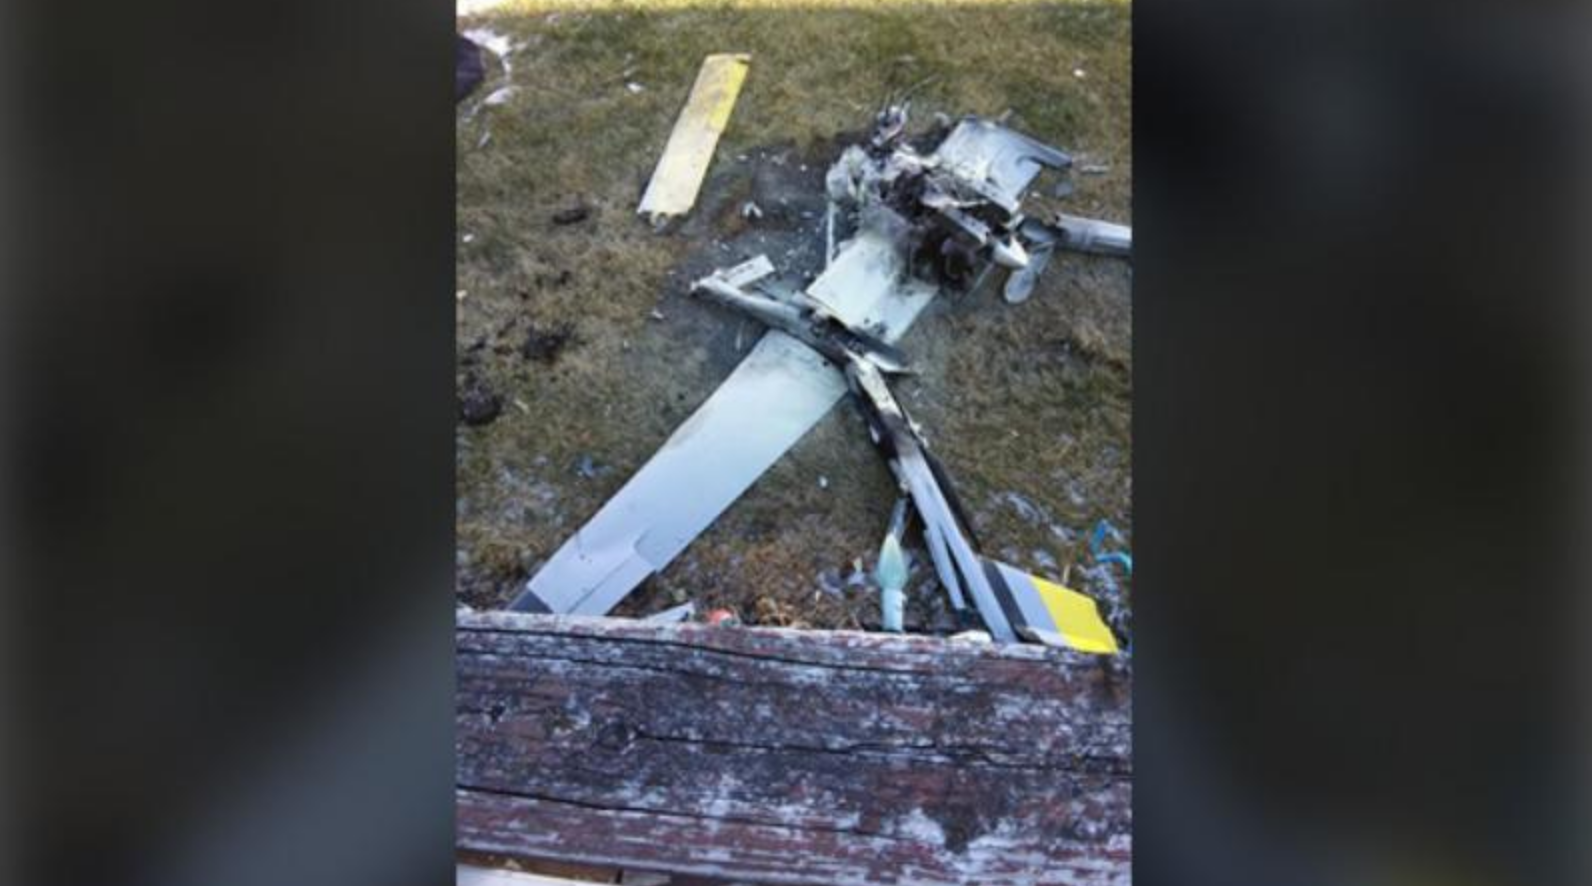 University of Iowa lab drone crashes near Iowa City Airport